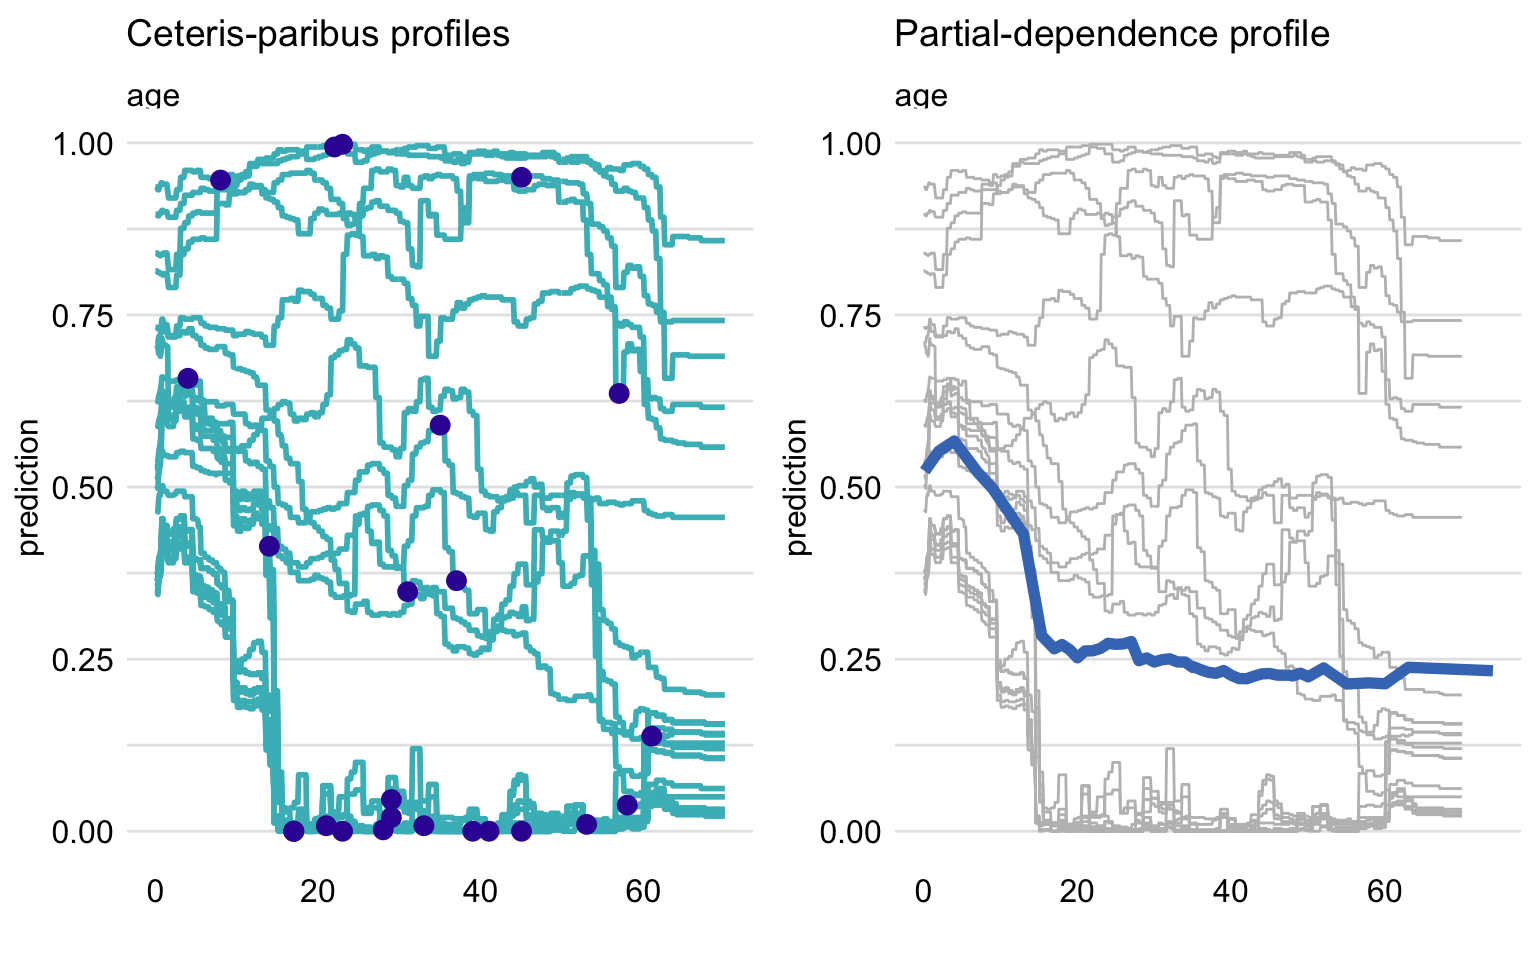 Ceteris-paribus (CP) and partial-dependence (PD) profiles for the random forest model for 25 randomly selected observations from the Titanic dataset. Left-hand-side plot: CP profiles for age; blue dots indicate the age and the corresponding prediction for the selected observations. Right-hand-side plot: CP profiles (grey lines) and the corresponding PD profile (blue line).